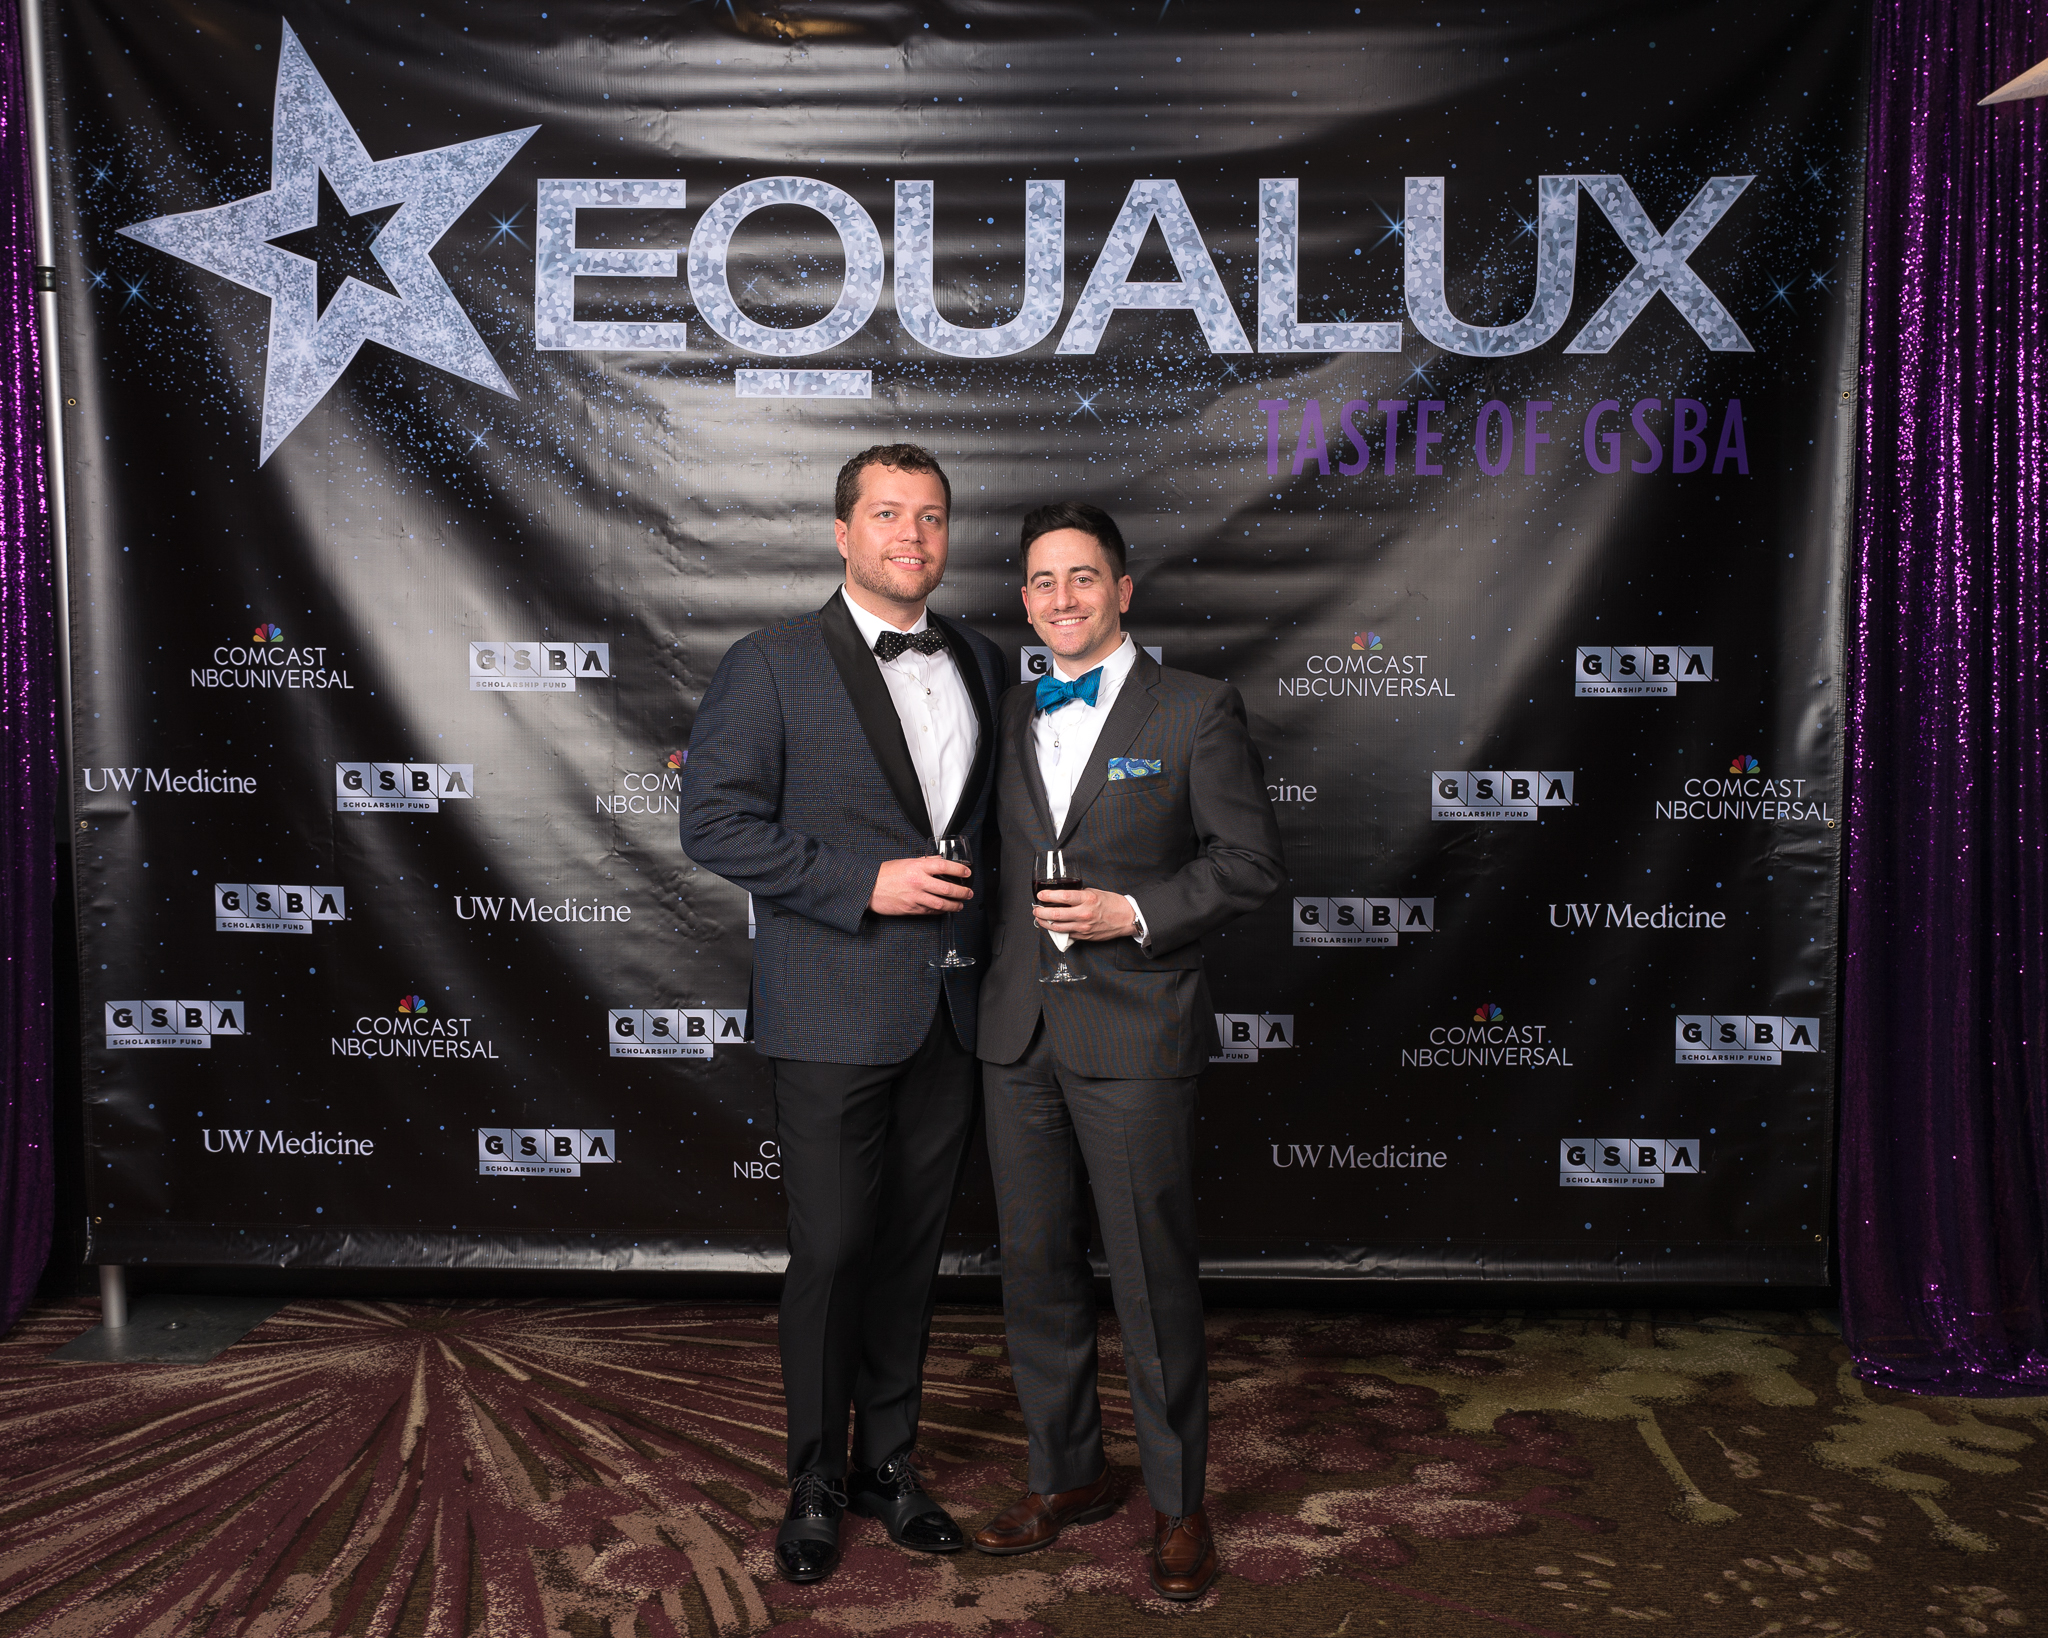 111718_GSBA EQUALUX at The Westin Seattle (Credit- Nate Gowdy)-116.jpg